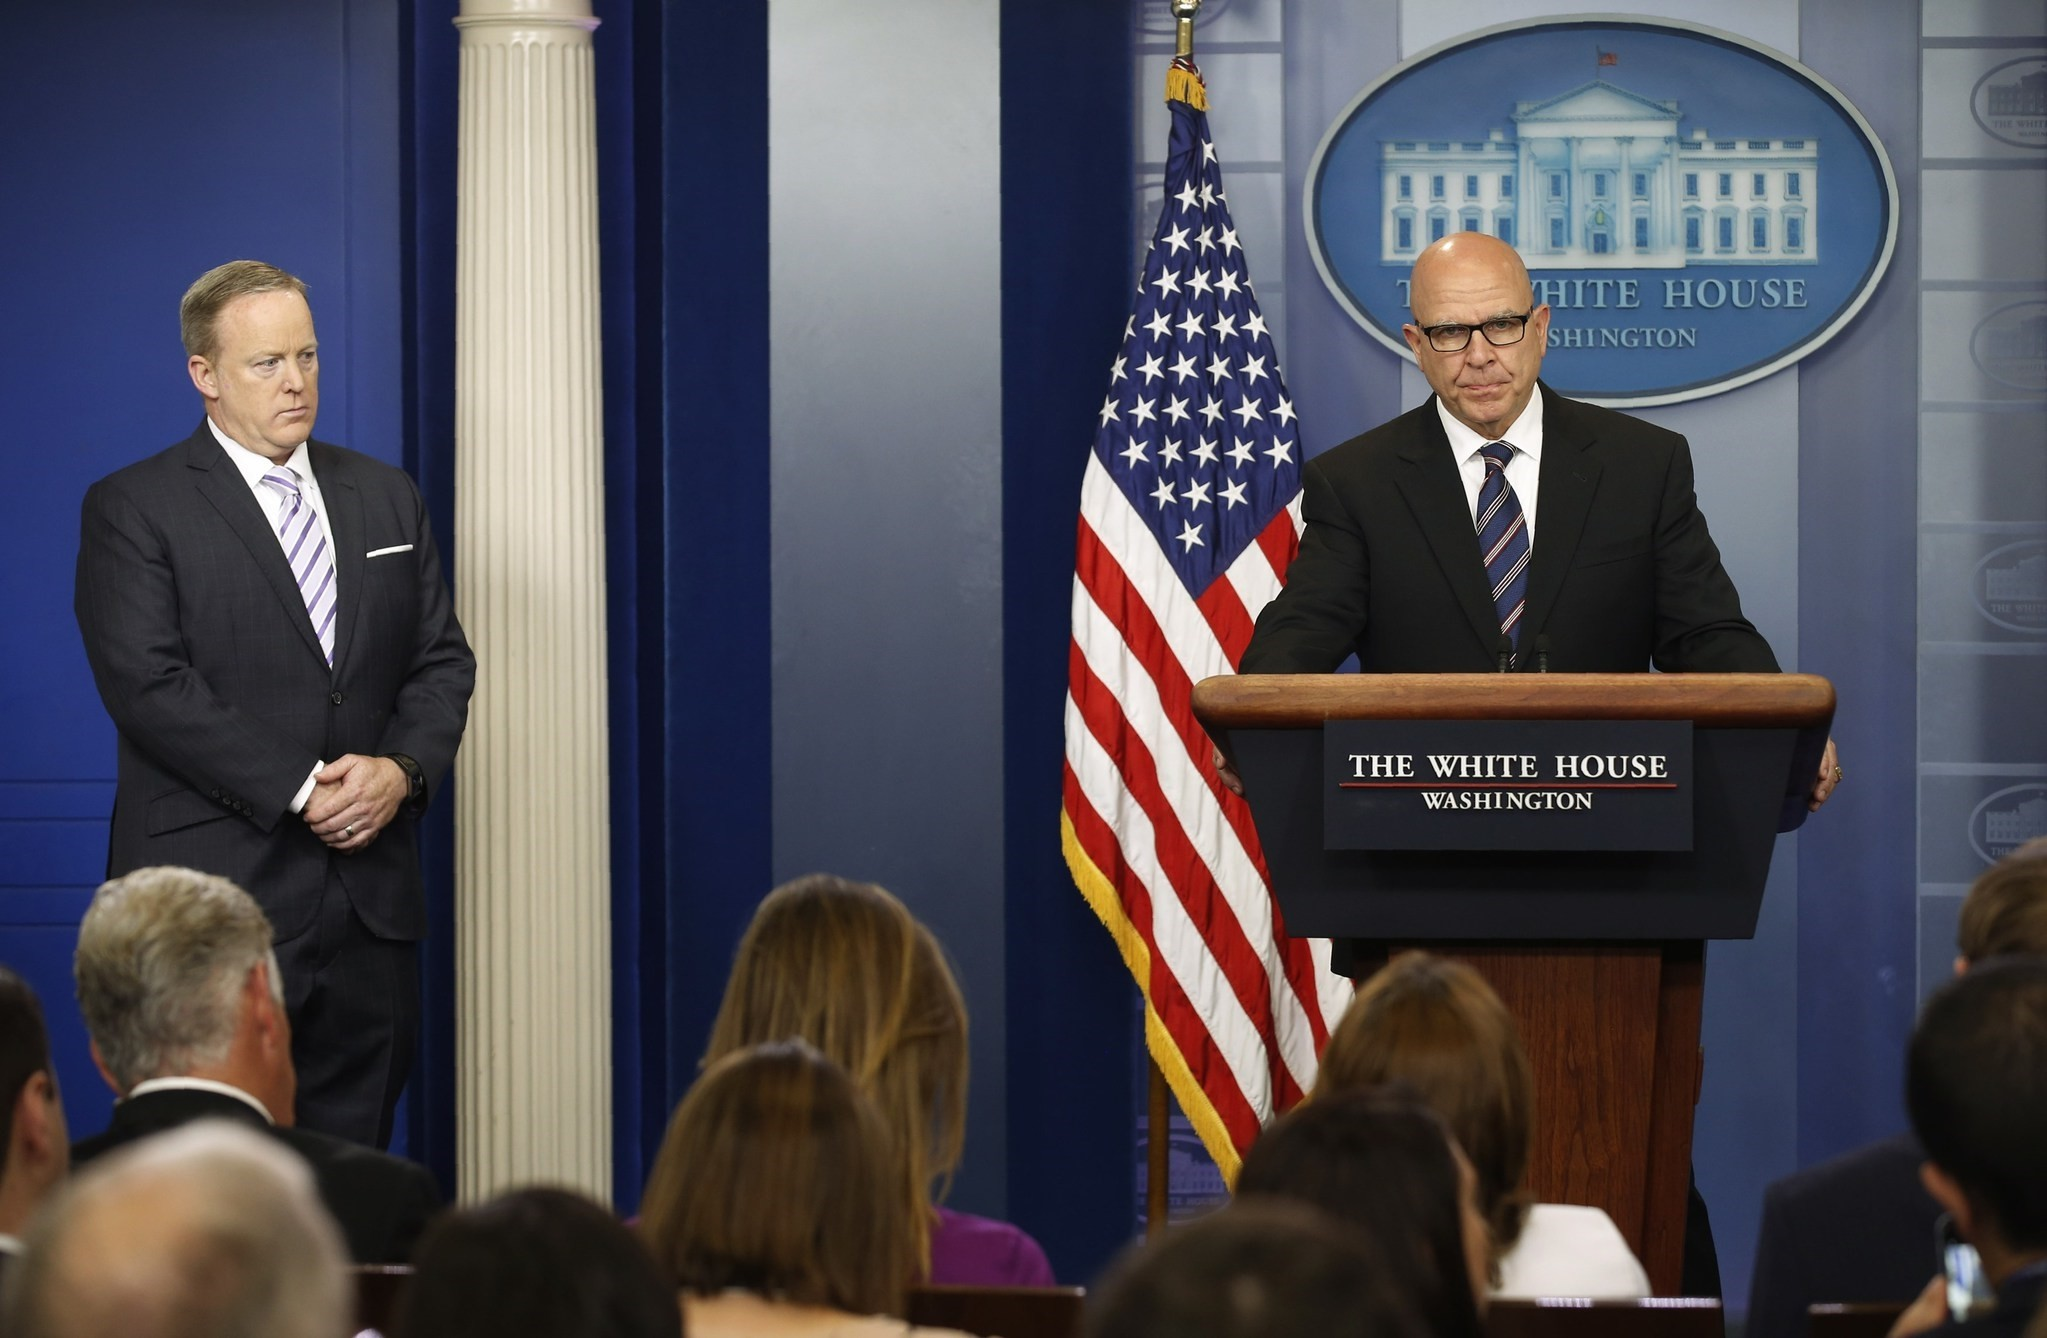 U.S. National Security Advisor H.R. McMaster speaks to reporters in the briefing room at the White House in Washington, U.S. May 16, 2017. (REUTERS Photo)